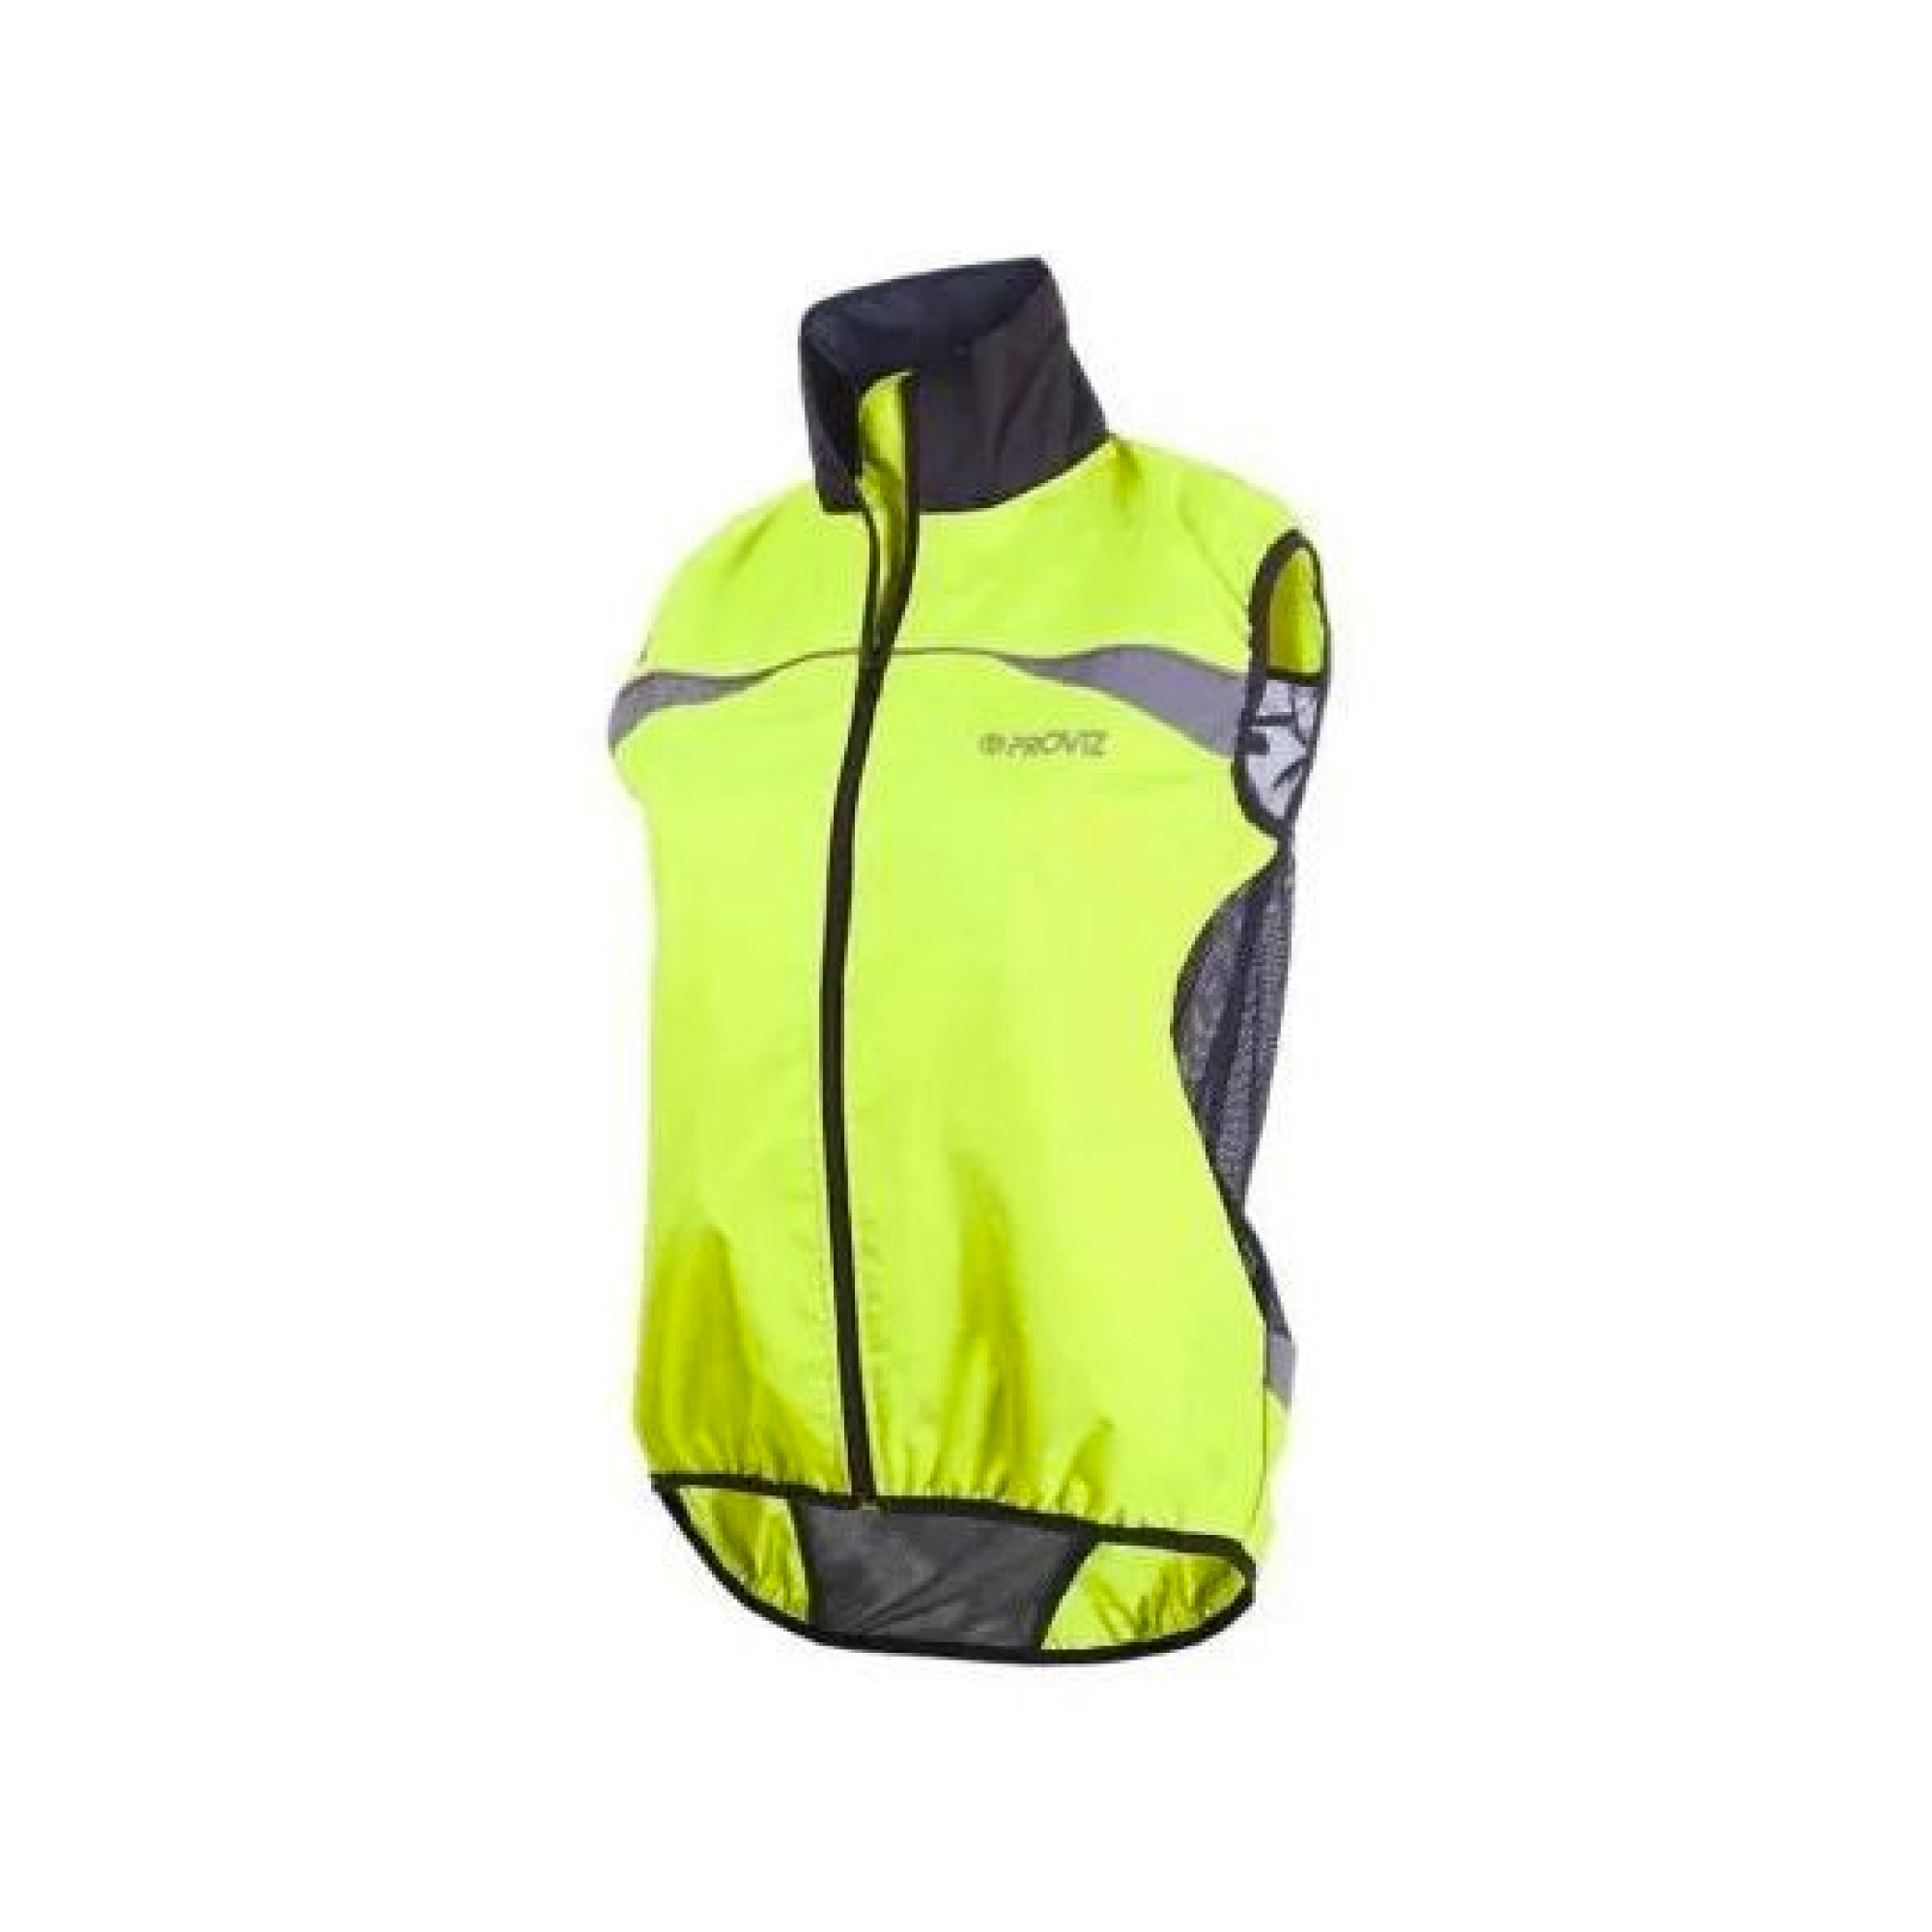 Gilet- Proviz High Visibility Yellow Wind Vest Womens Fit Size 12 Pv251-1